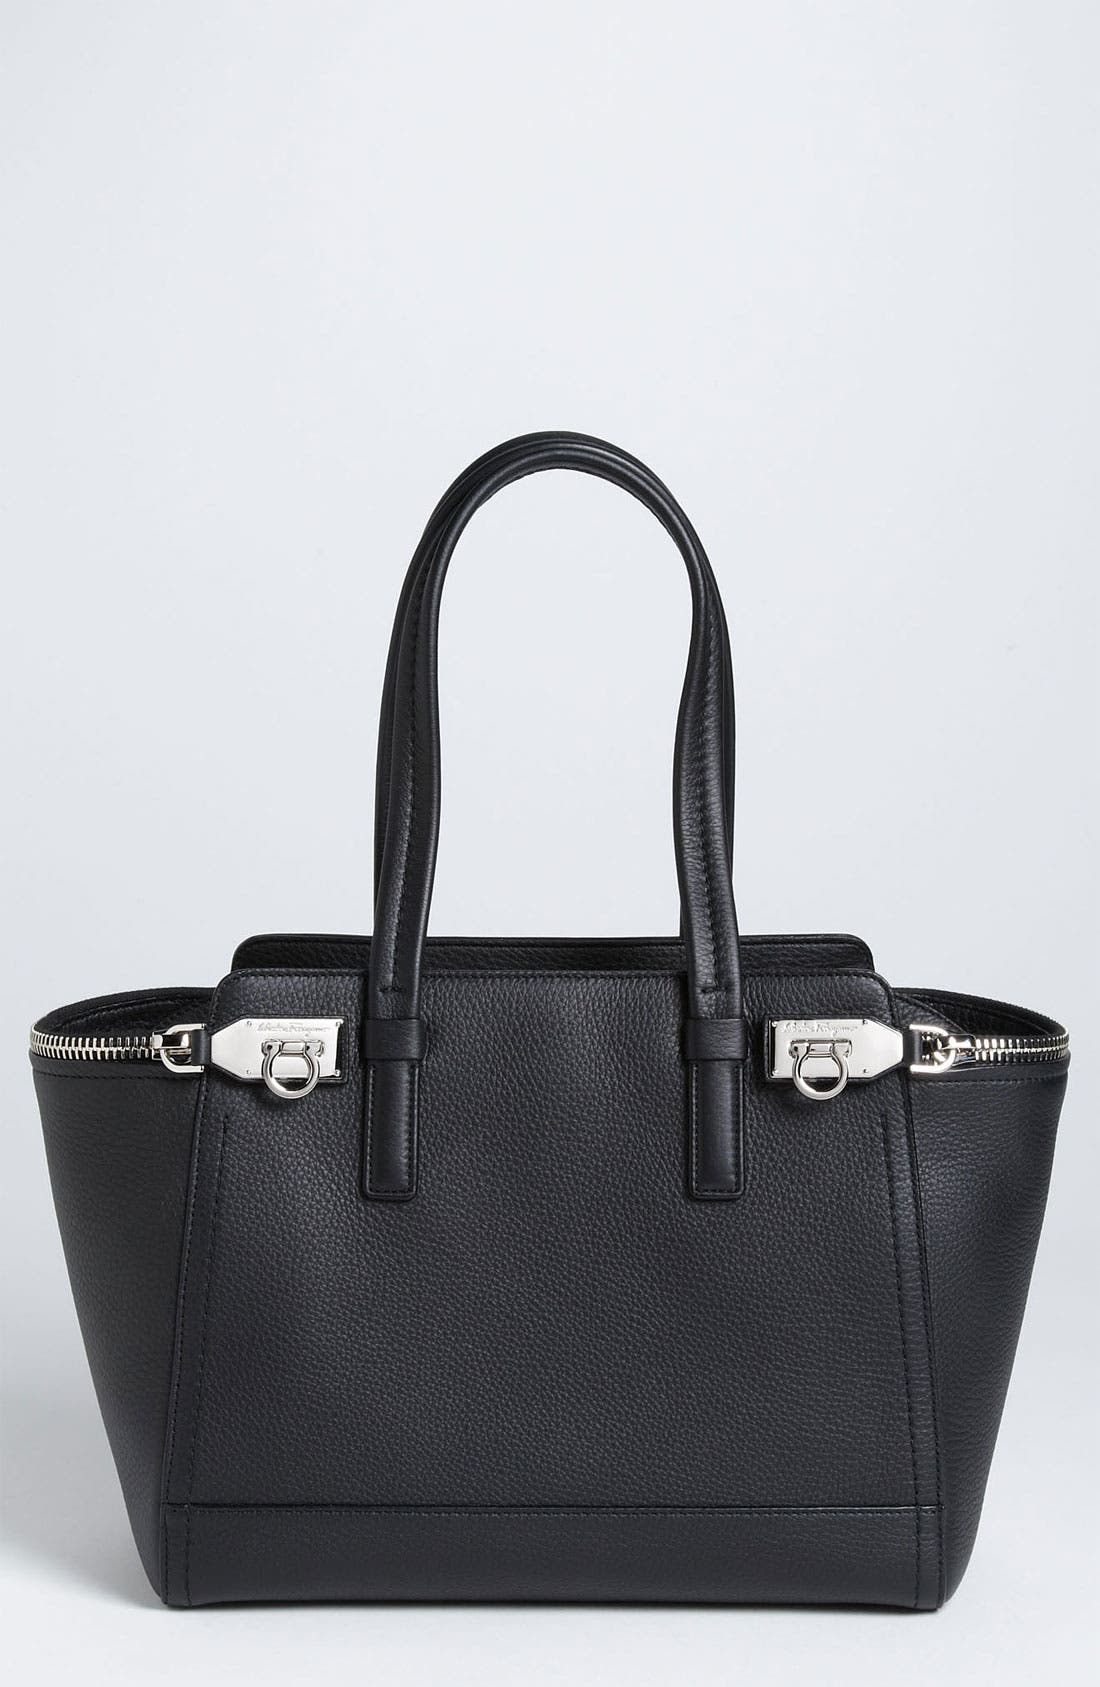 Alternate Image 1 Selected - Salvatore Ferragamo 'Small Arianna' Leather Satchel